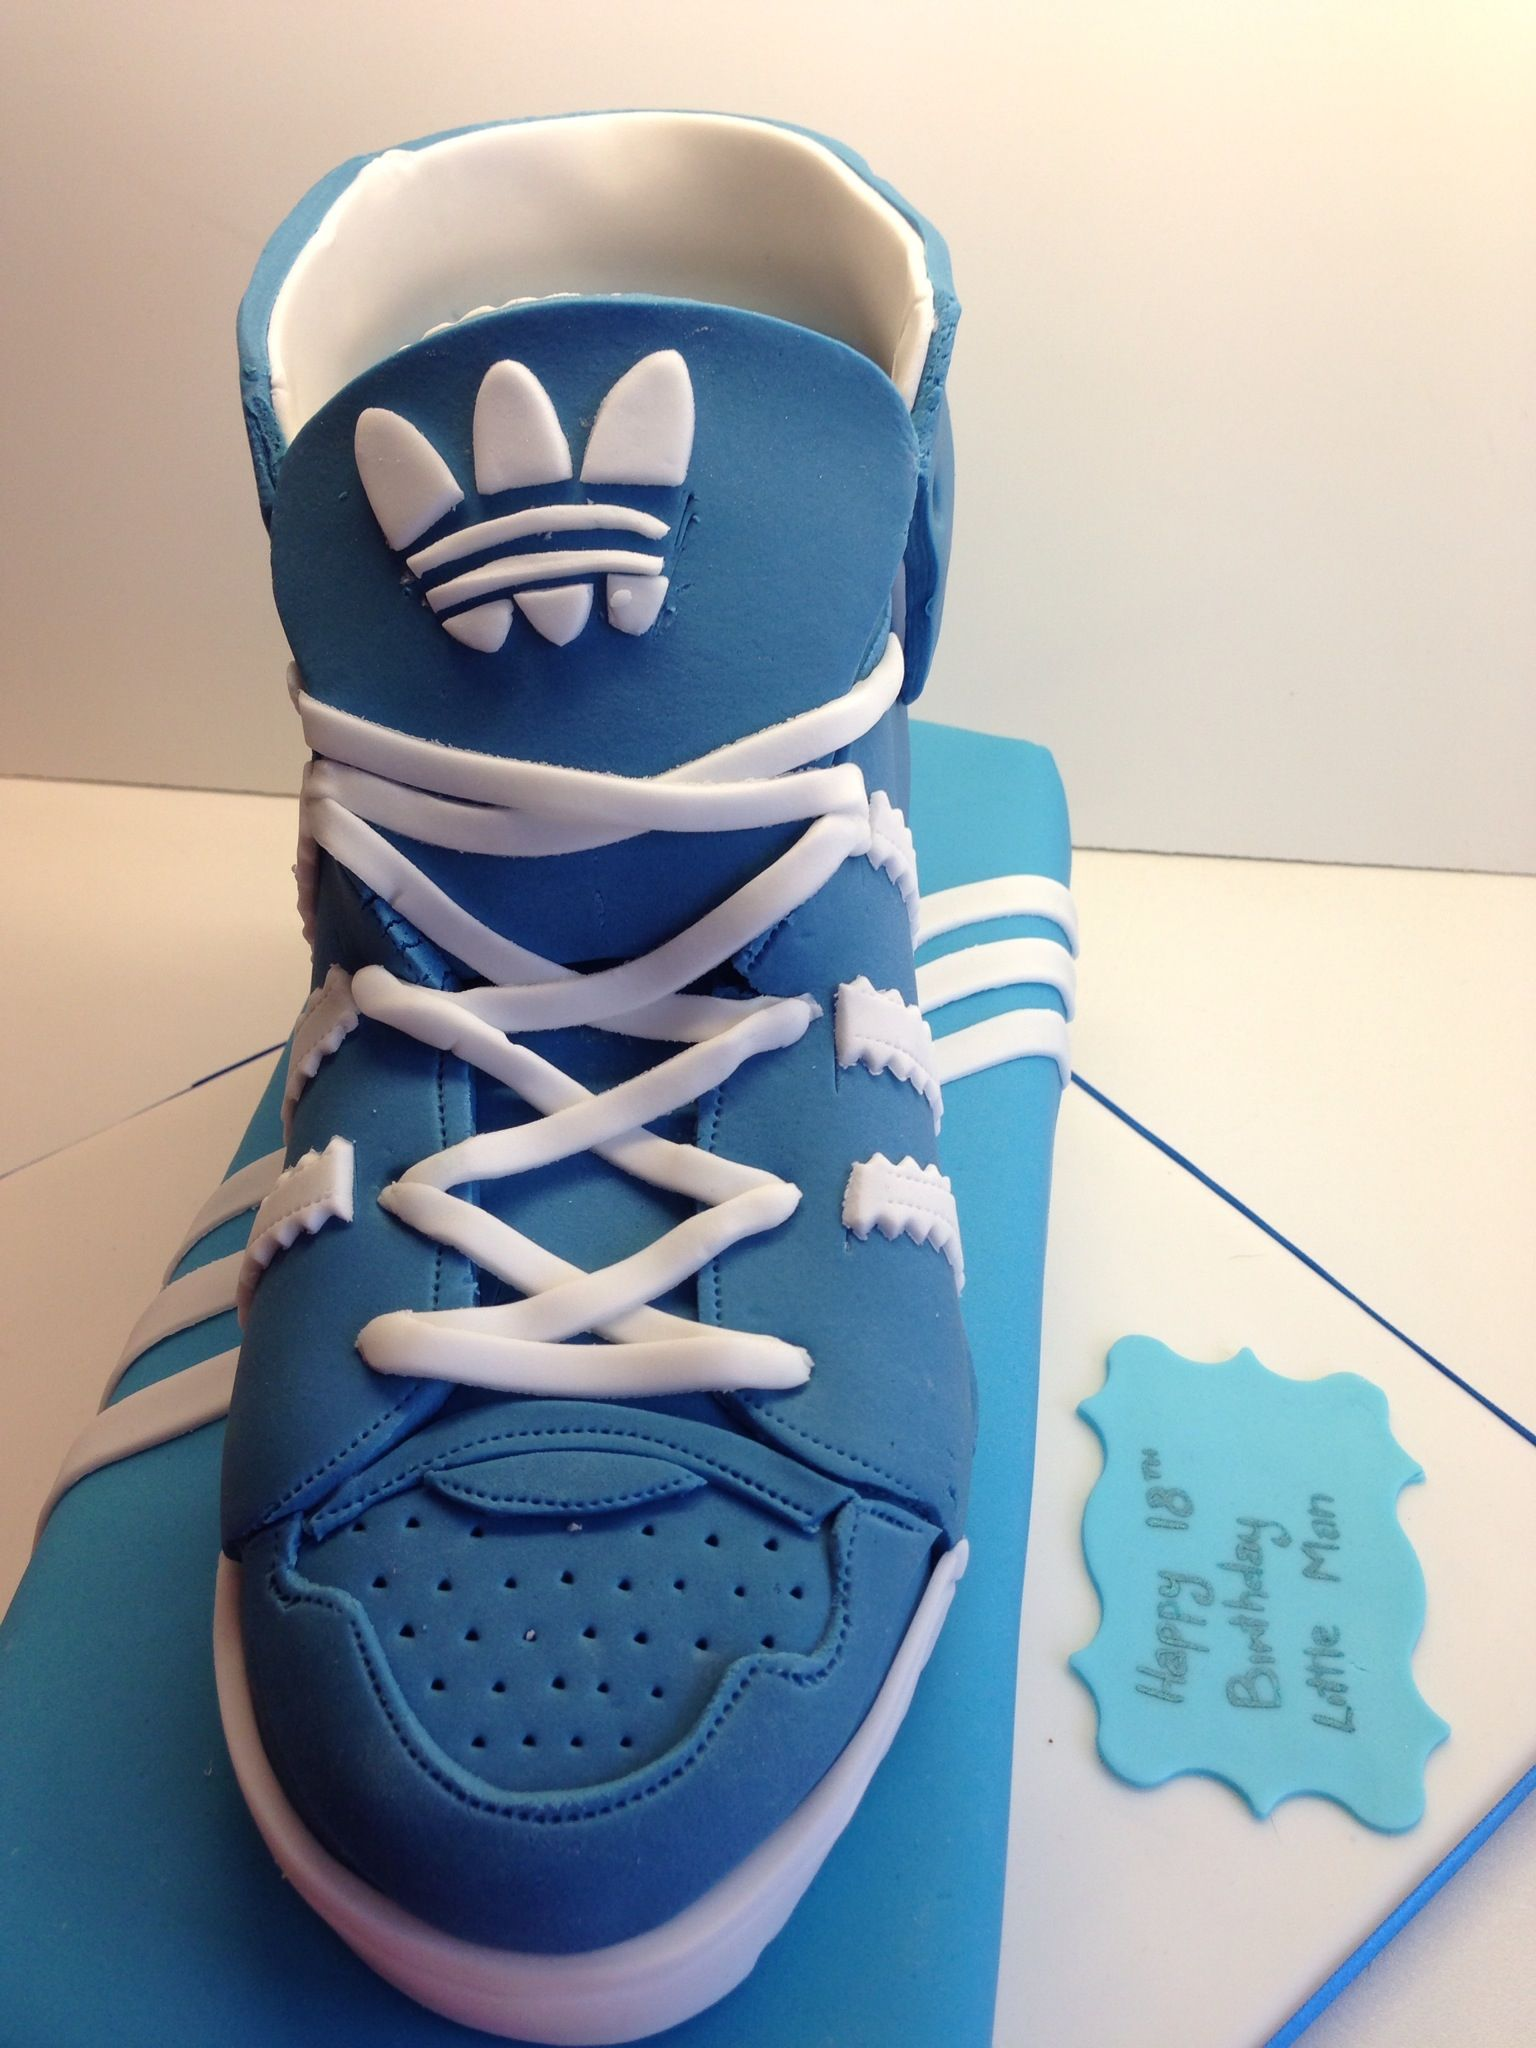 Adidas shoe box and trainer cake birthday cakes for men